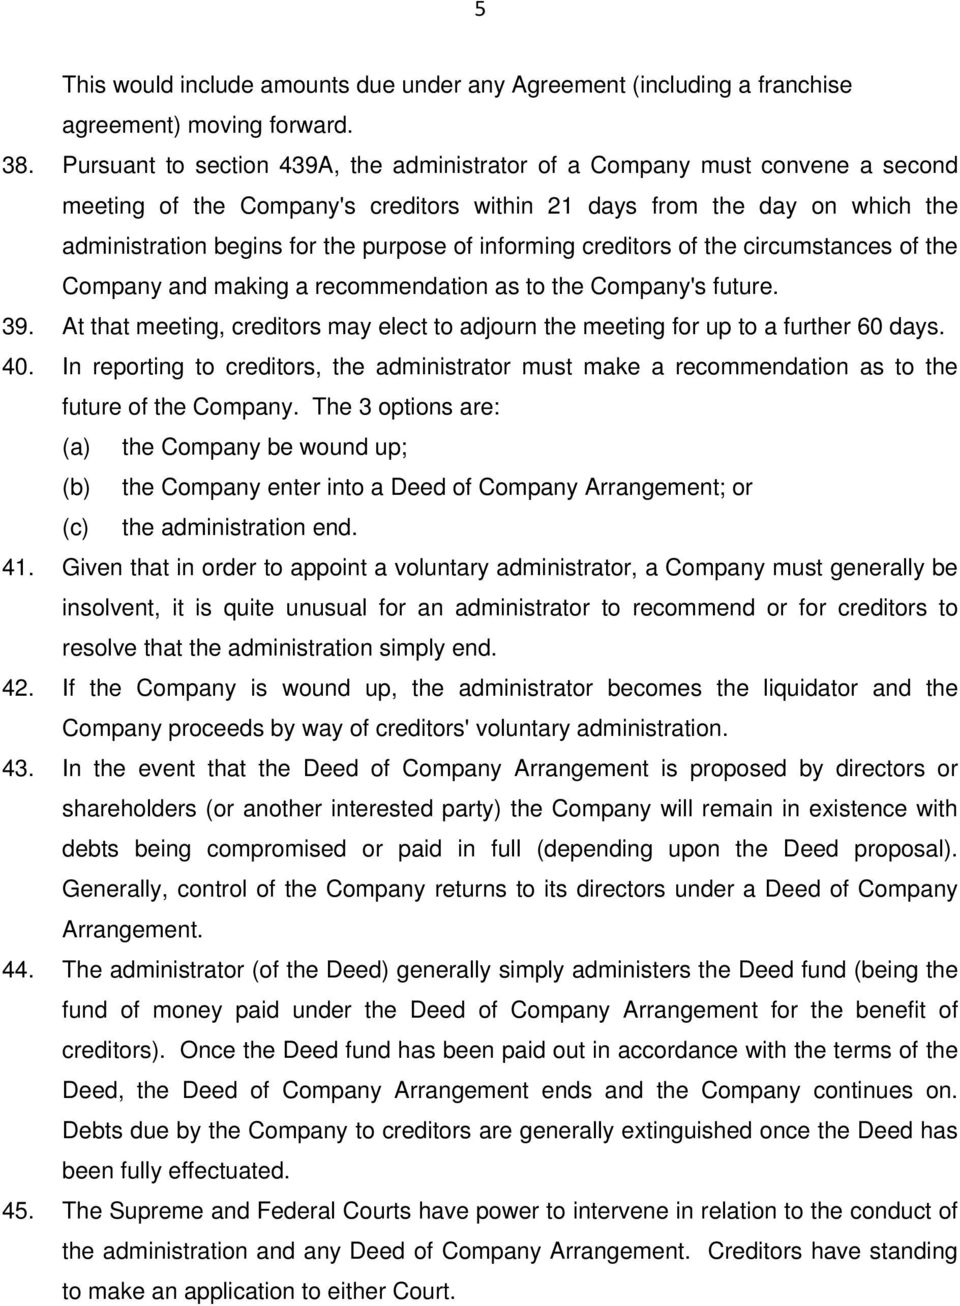 informing creditors of the circumstances of the Company and making a recommendation as to the Company's future. 39.